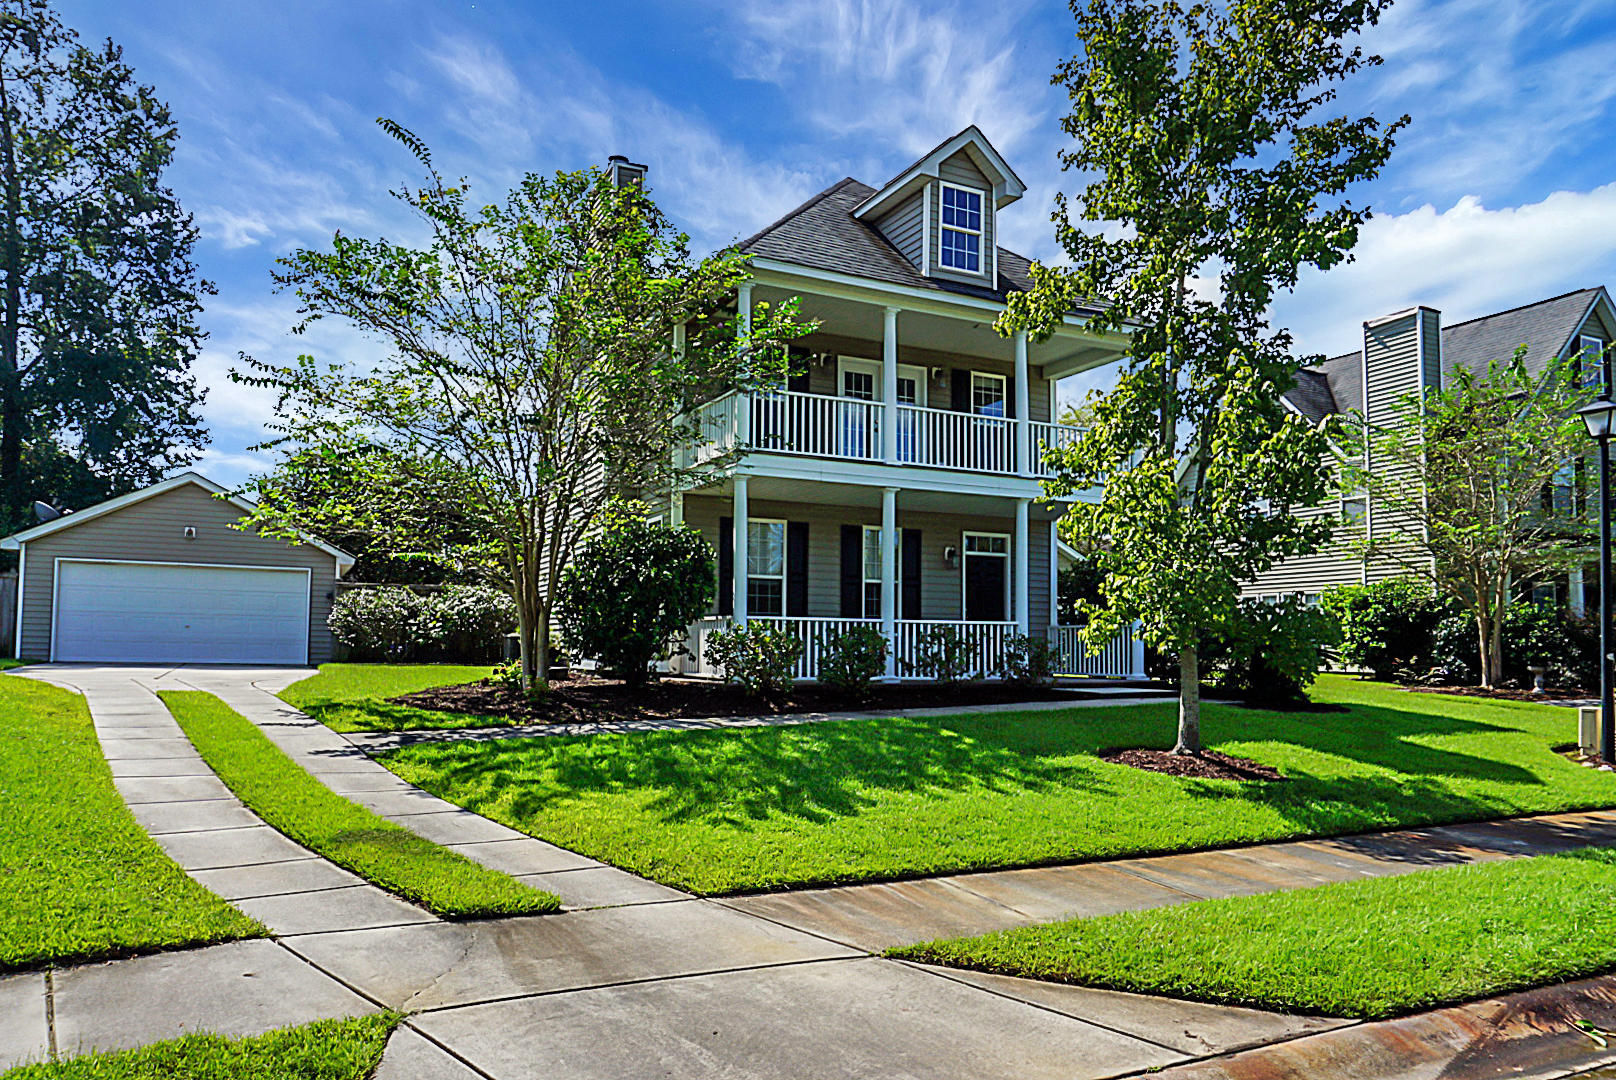 Heatherwoods Homes For Sale - 120 Full Moon, Ladson, SC - 40